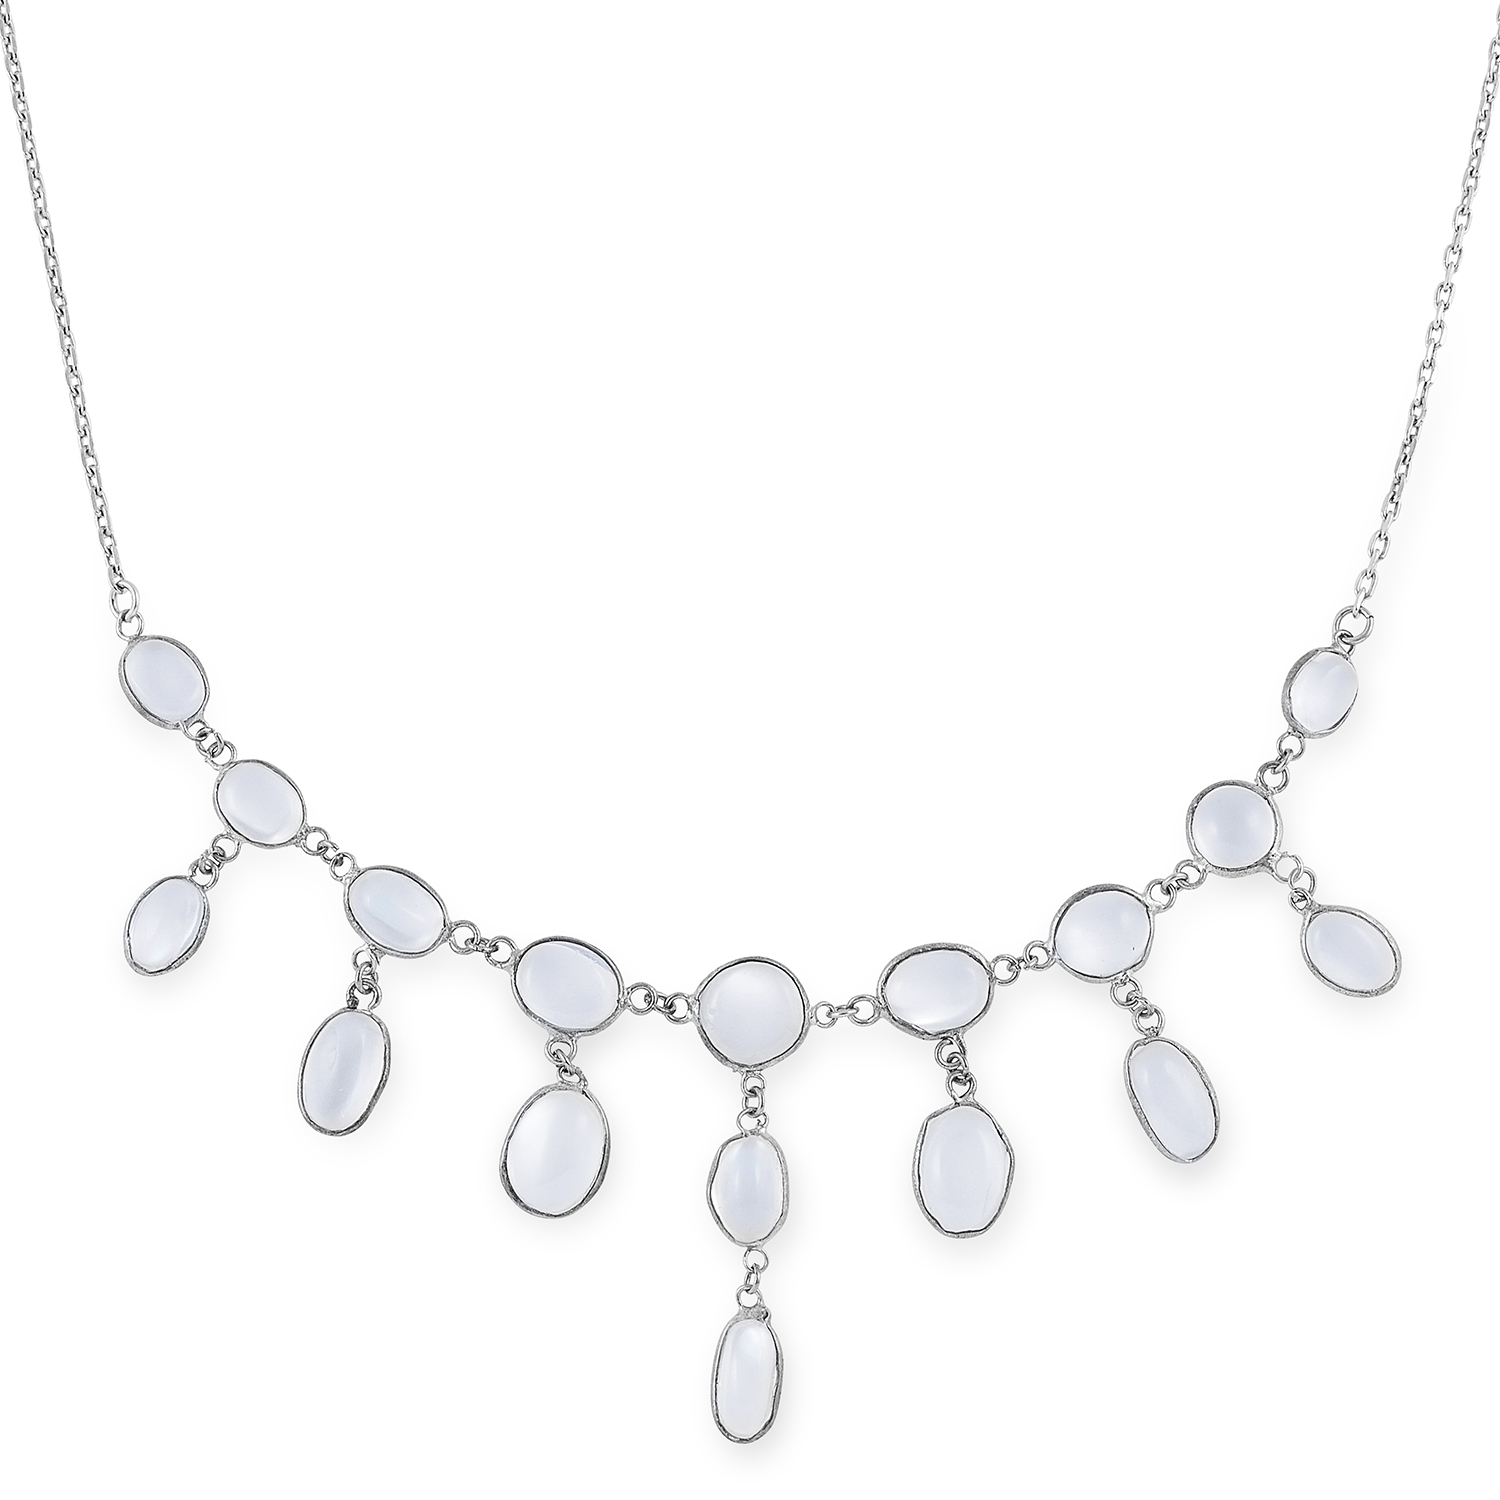 MOONSTONE NECKLACE set with cabochon moonstones, 48cm, 7.5g.